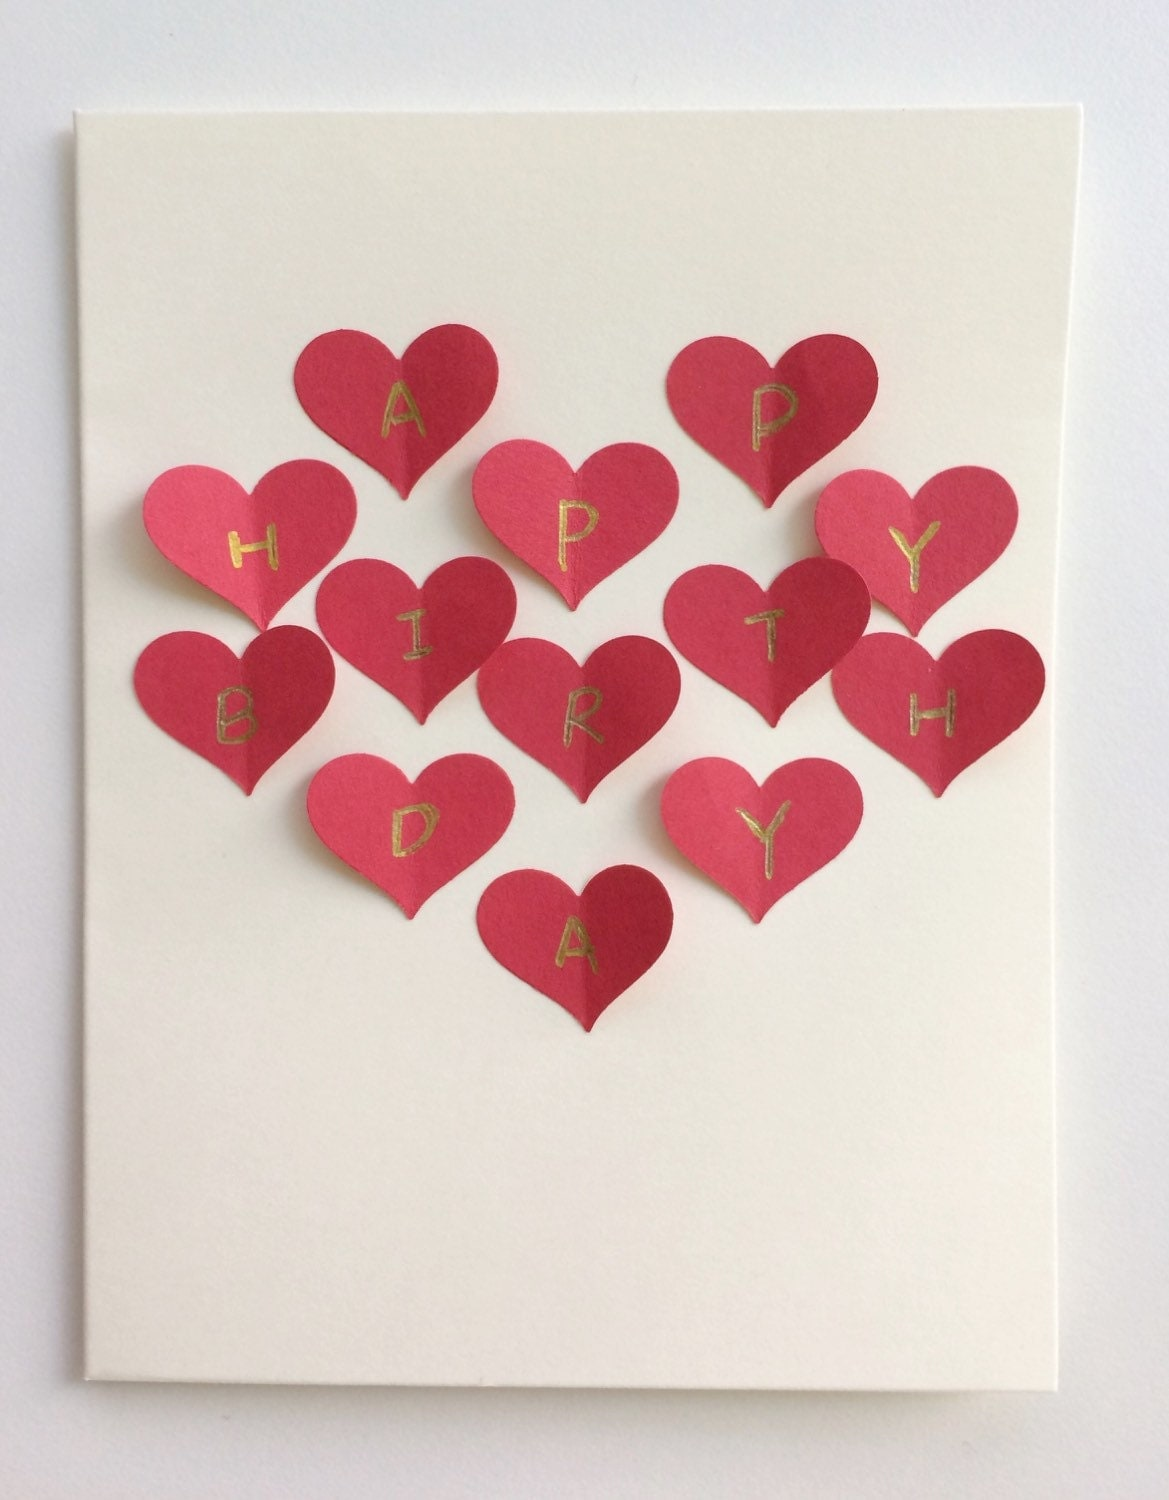 Red heart collage handmade 3d postcard card romantic gift for for Love picture ideas